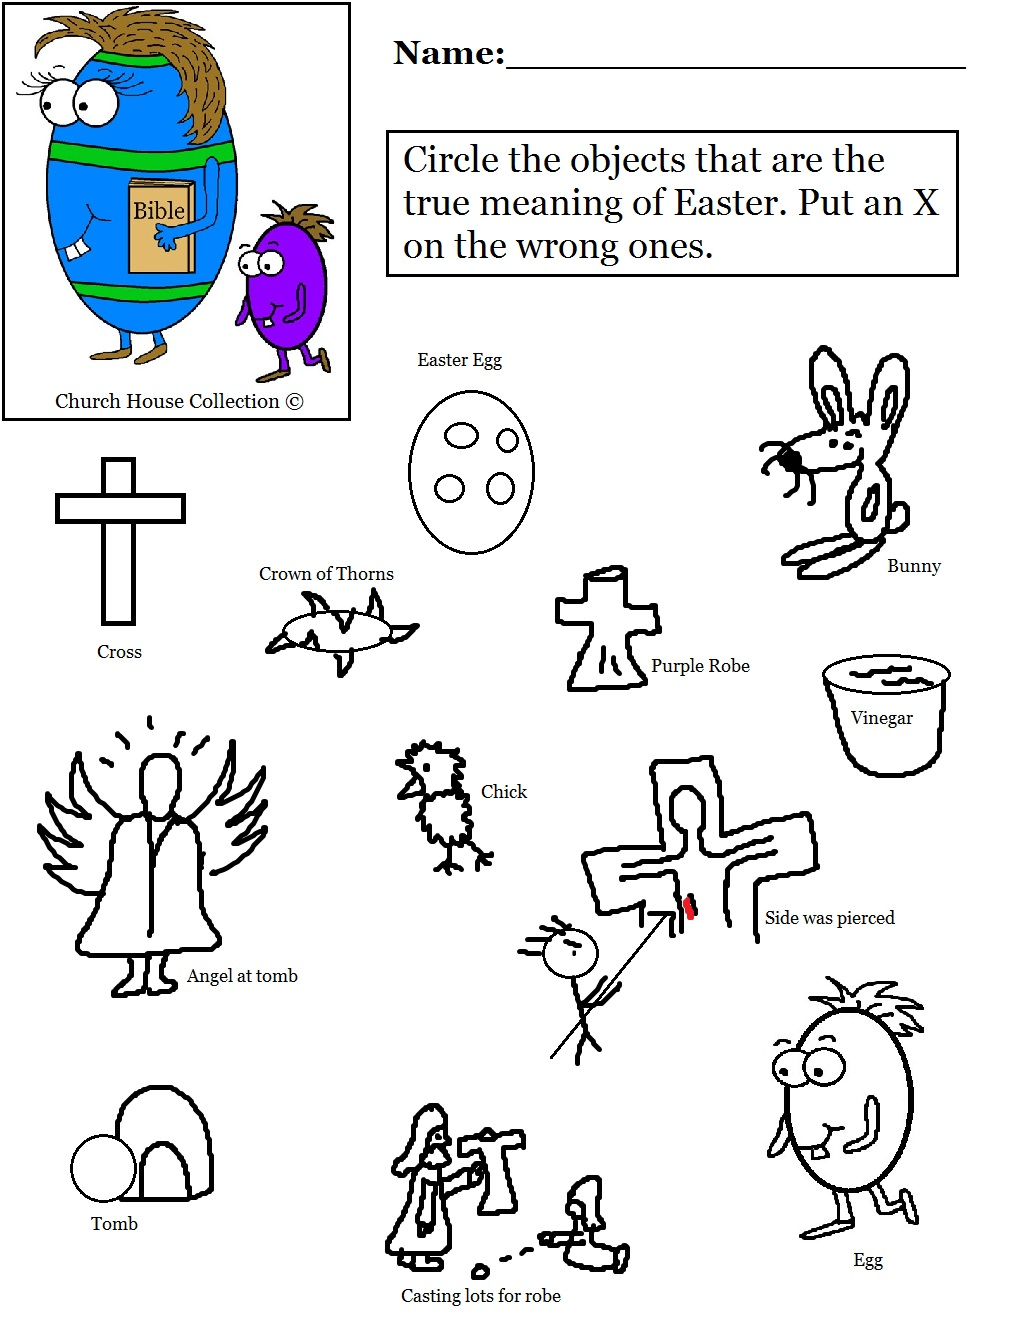 Worksheet Sunday School Printable Worksheets church house collection blog easter egg with bible worksheet worksheet